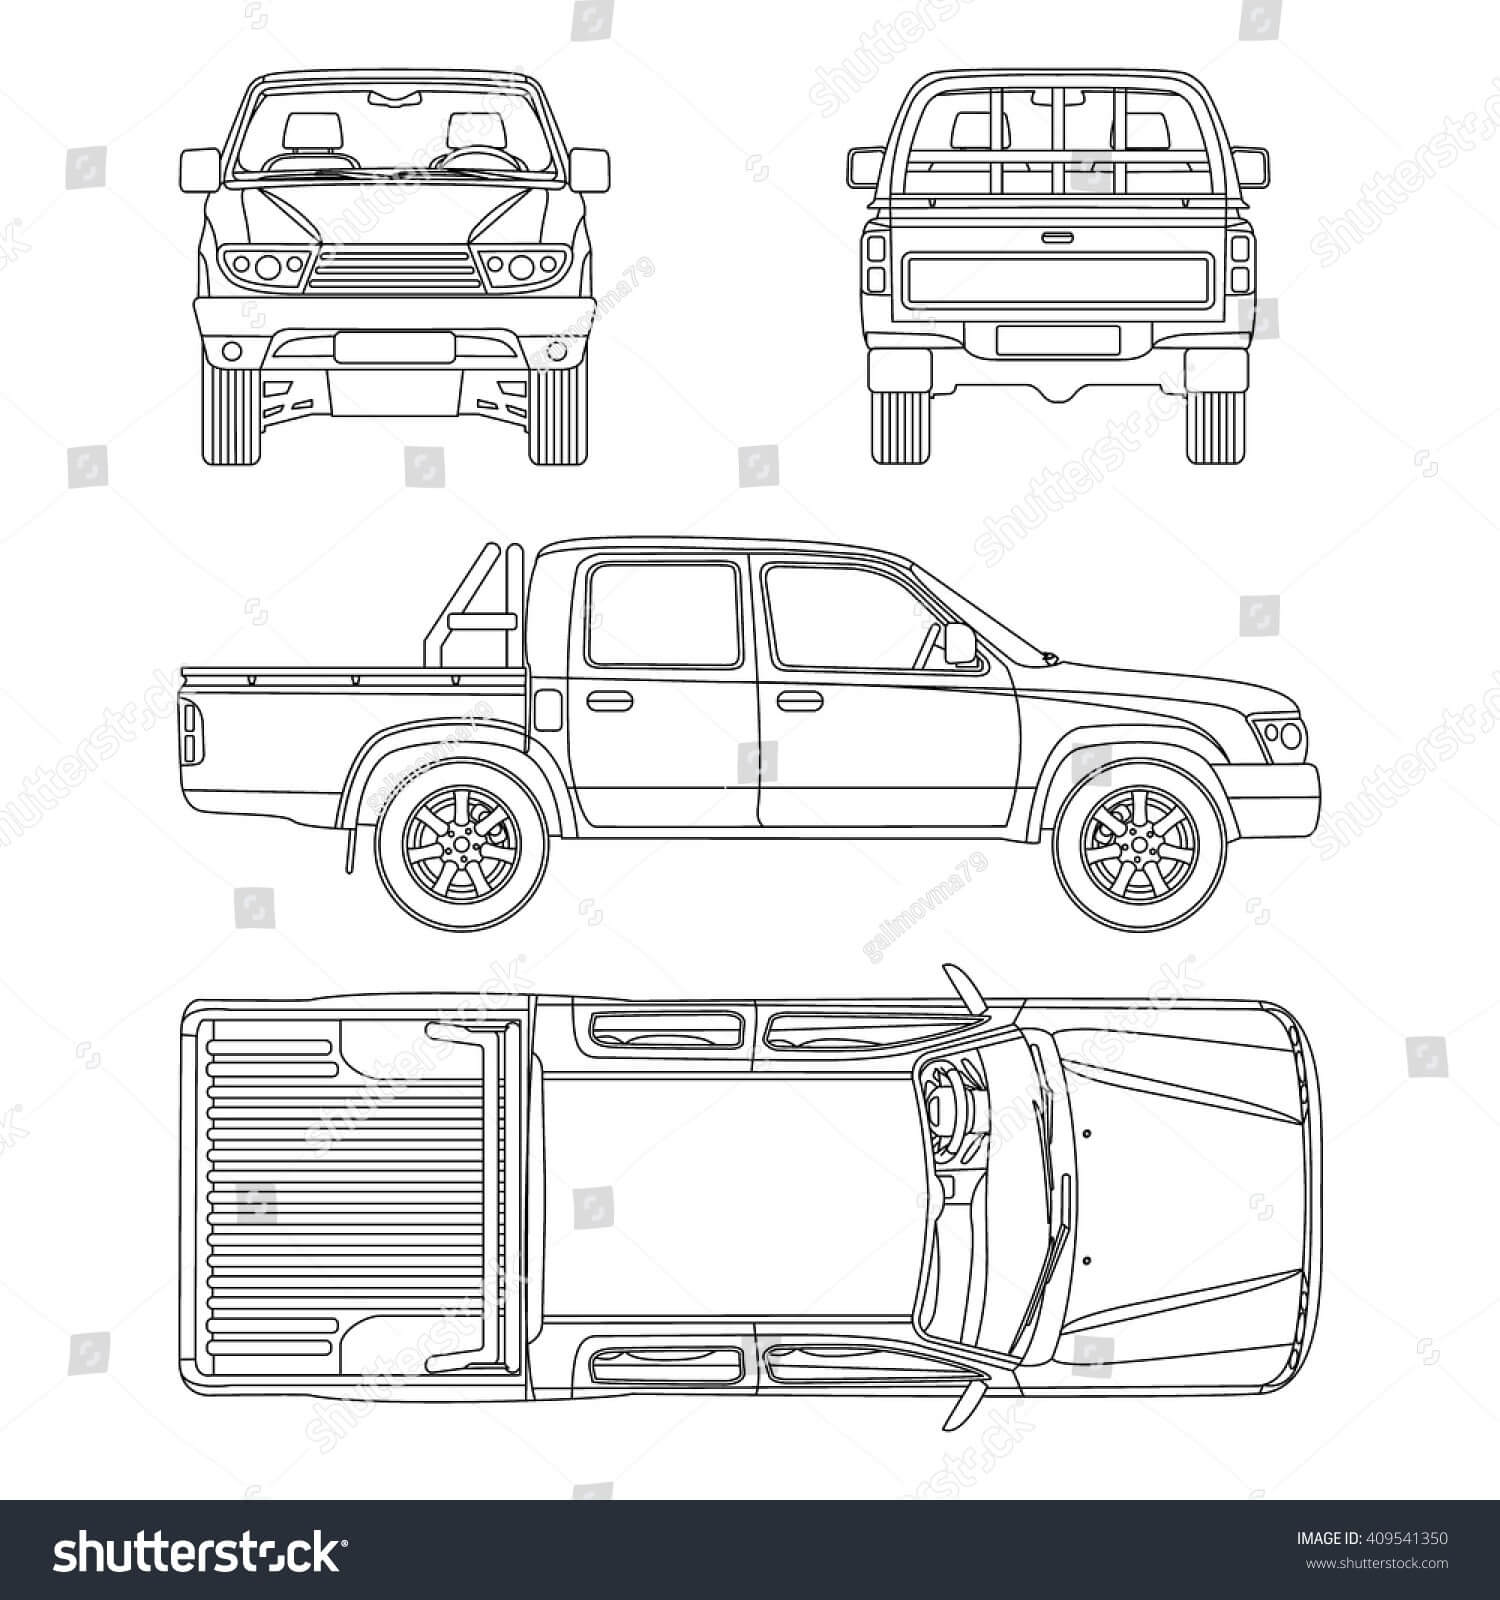 Damage Inspection Diagram Moreover Vehicle Damage Report With Regard To Car Damage Report Template